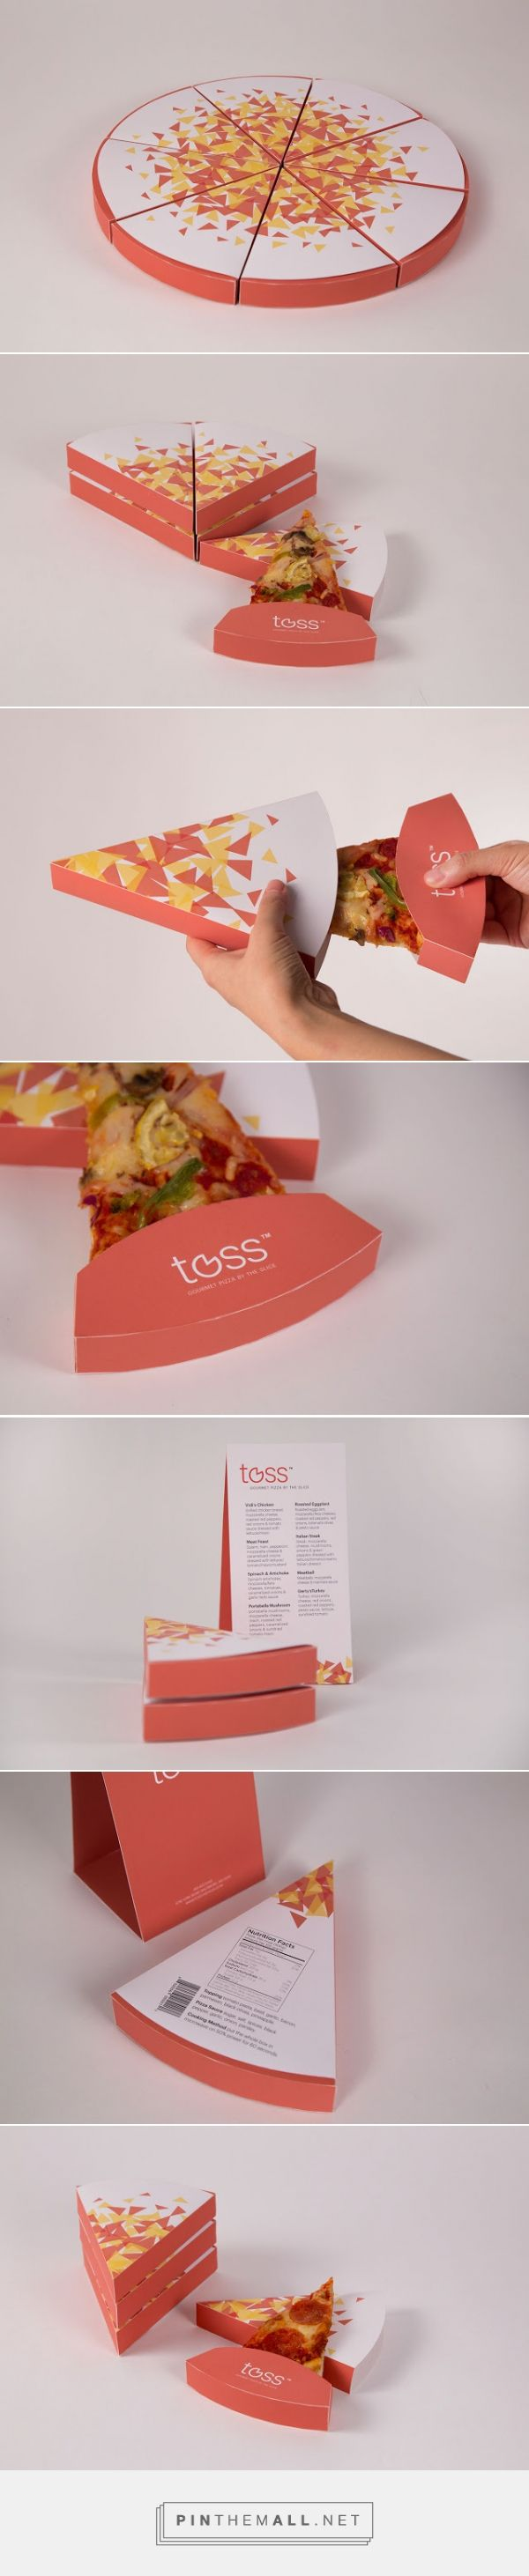 cool packaging.